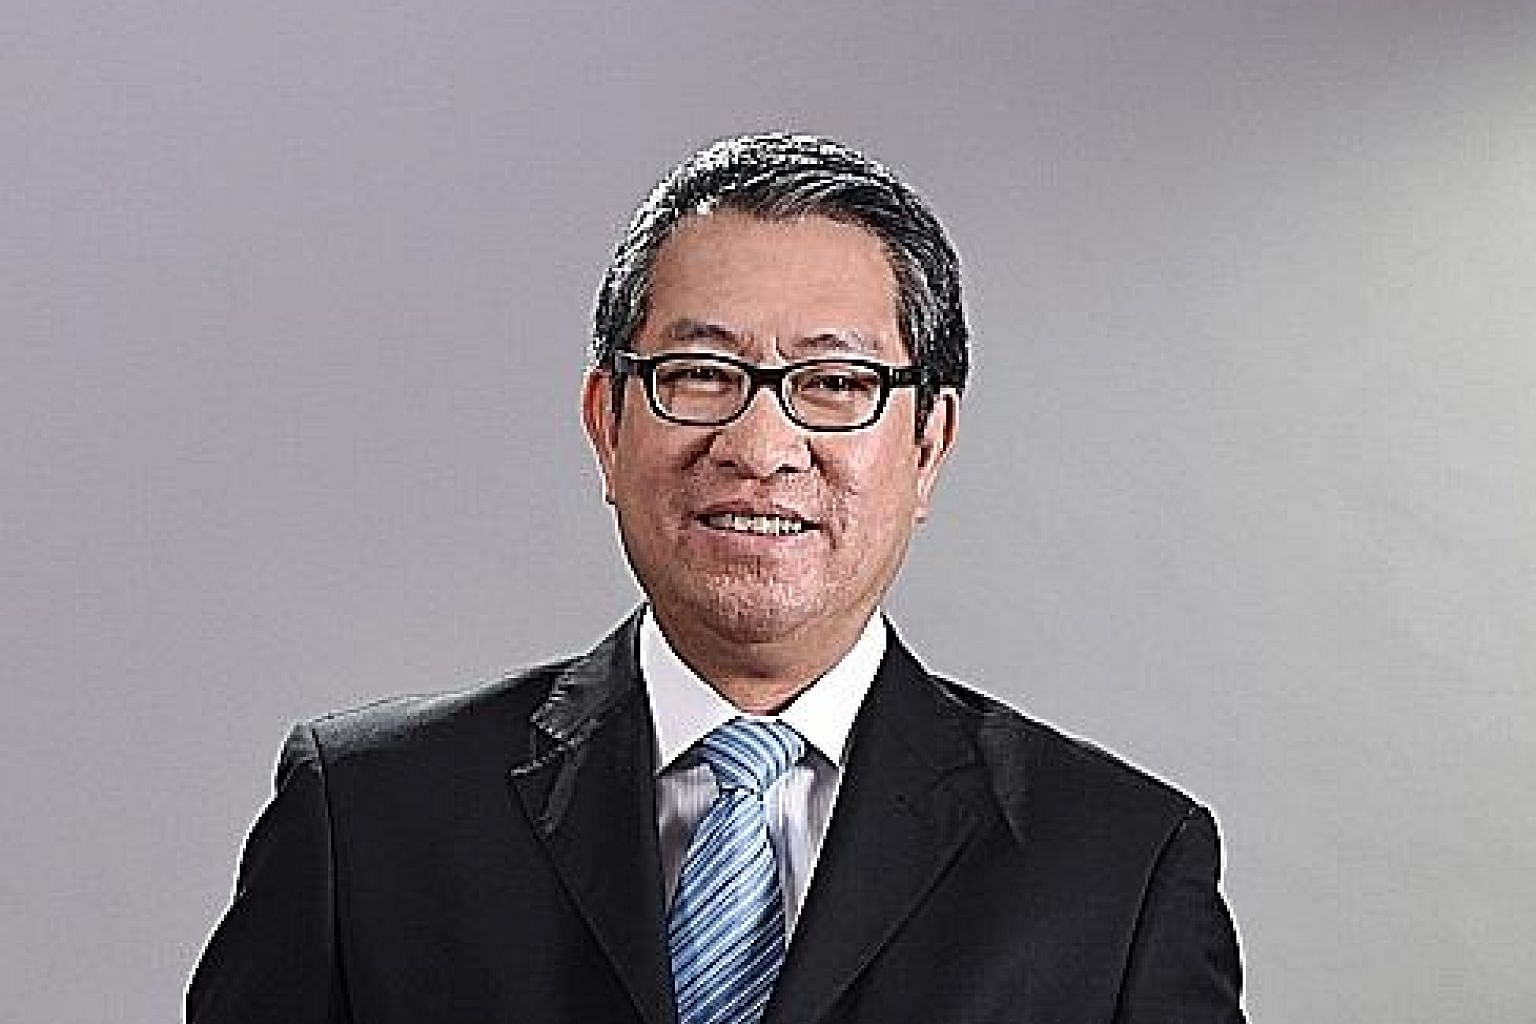 Mr Krisda, CEO of Mitr Phol Group, says firms should be more competitive by applying innovation and technology.